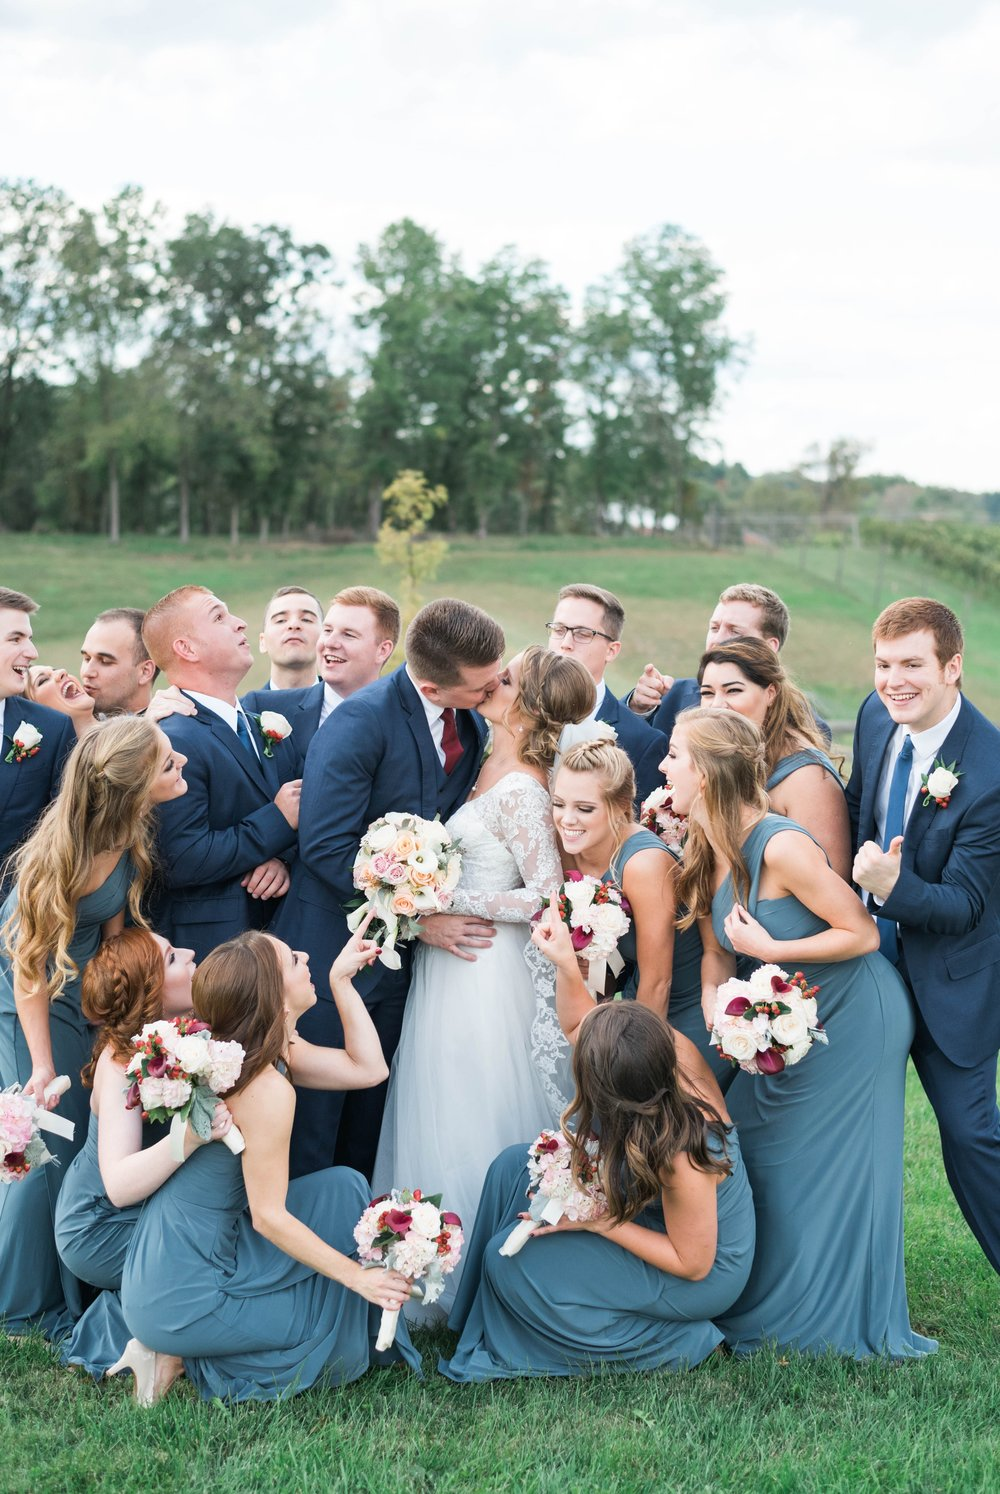 GrantElizabeth_wineryatbullrun_DCwedding_Virginiaweddingphotographer 46.jpg